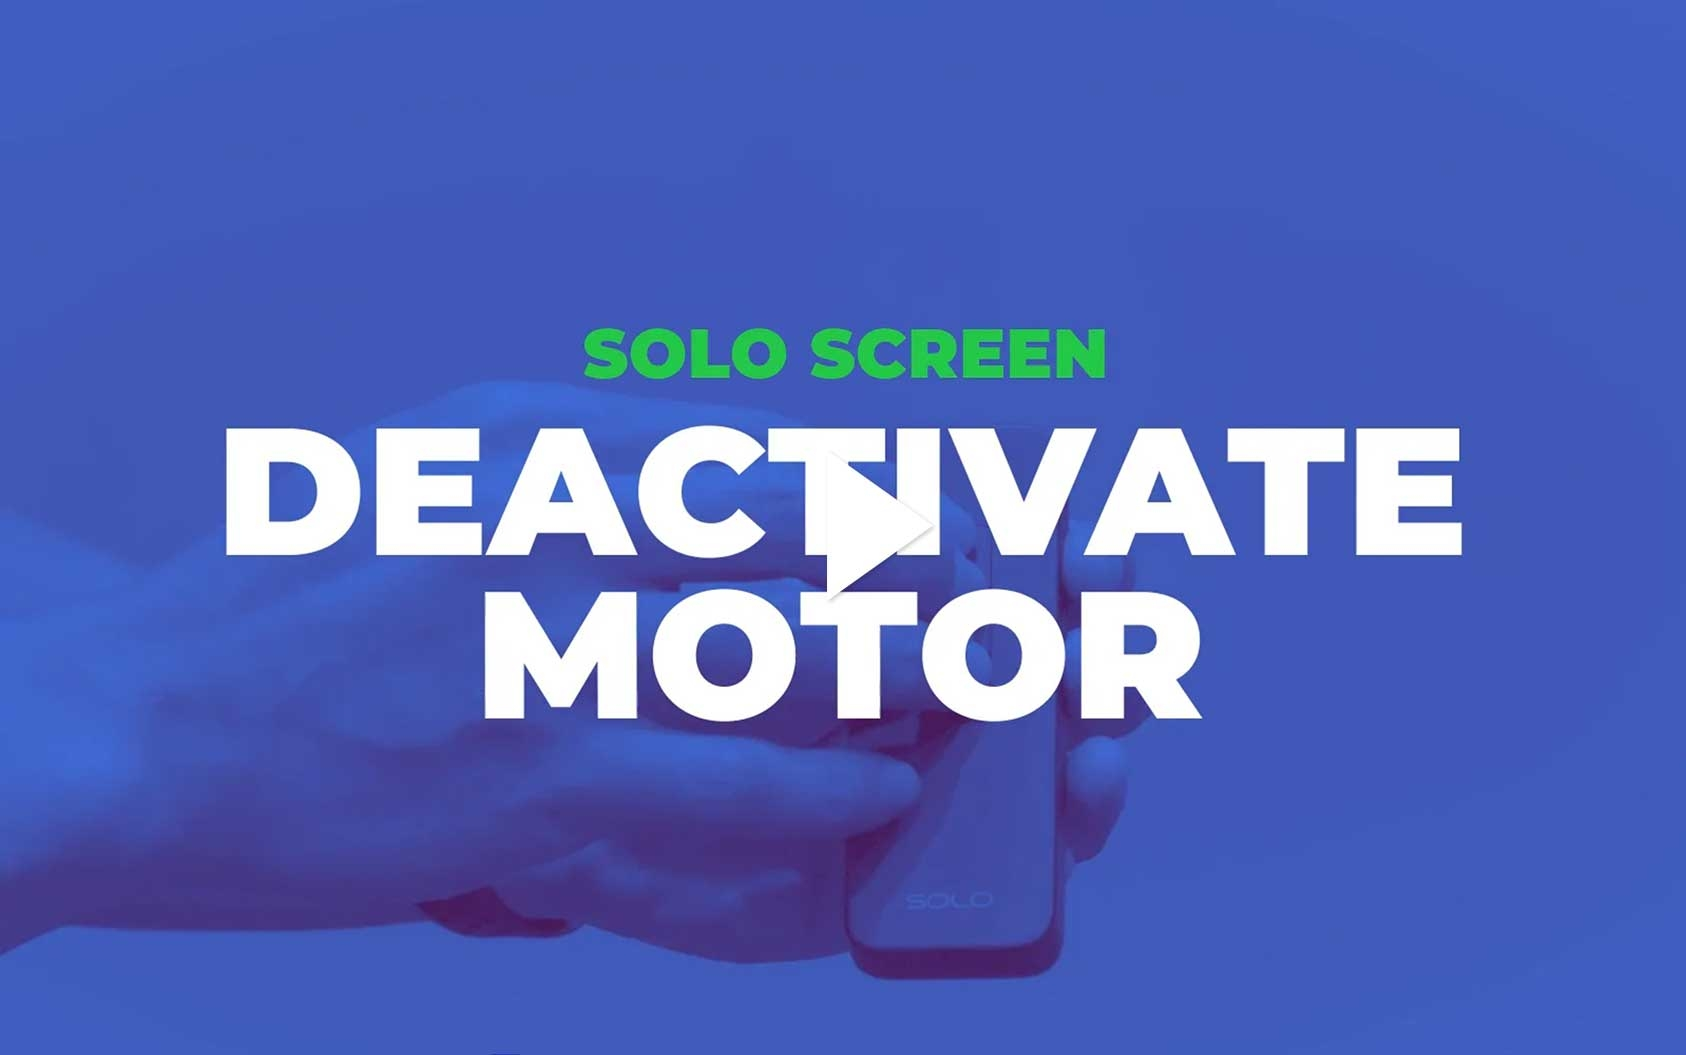 Solo - How to Deactivate the Motor